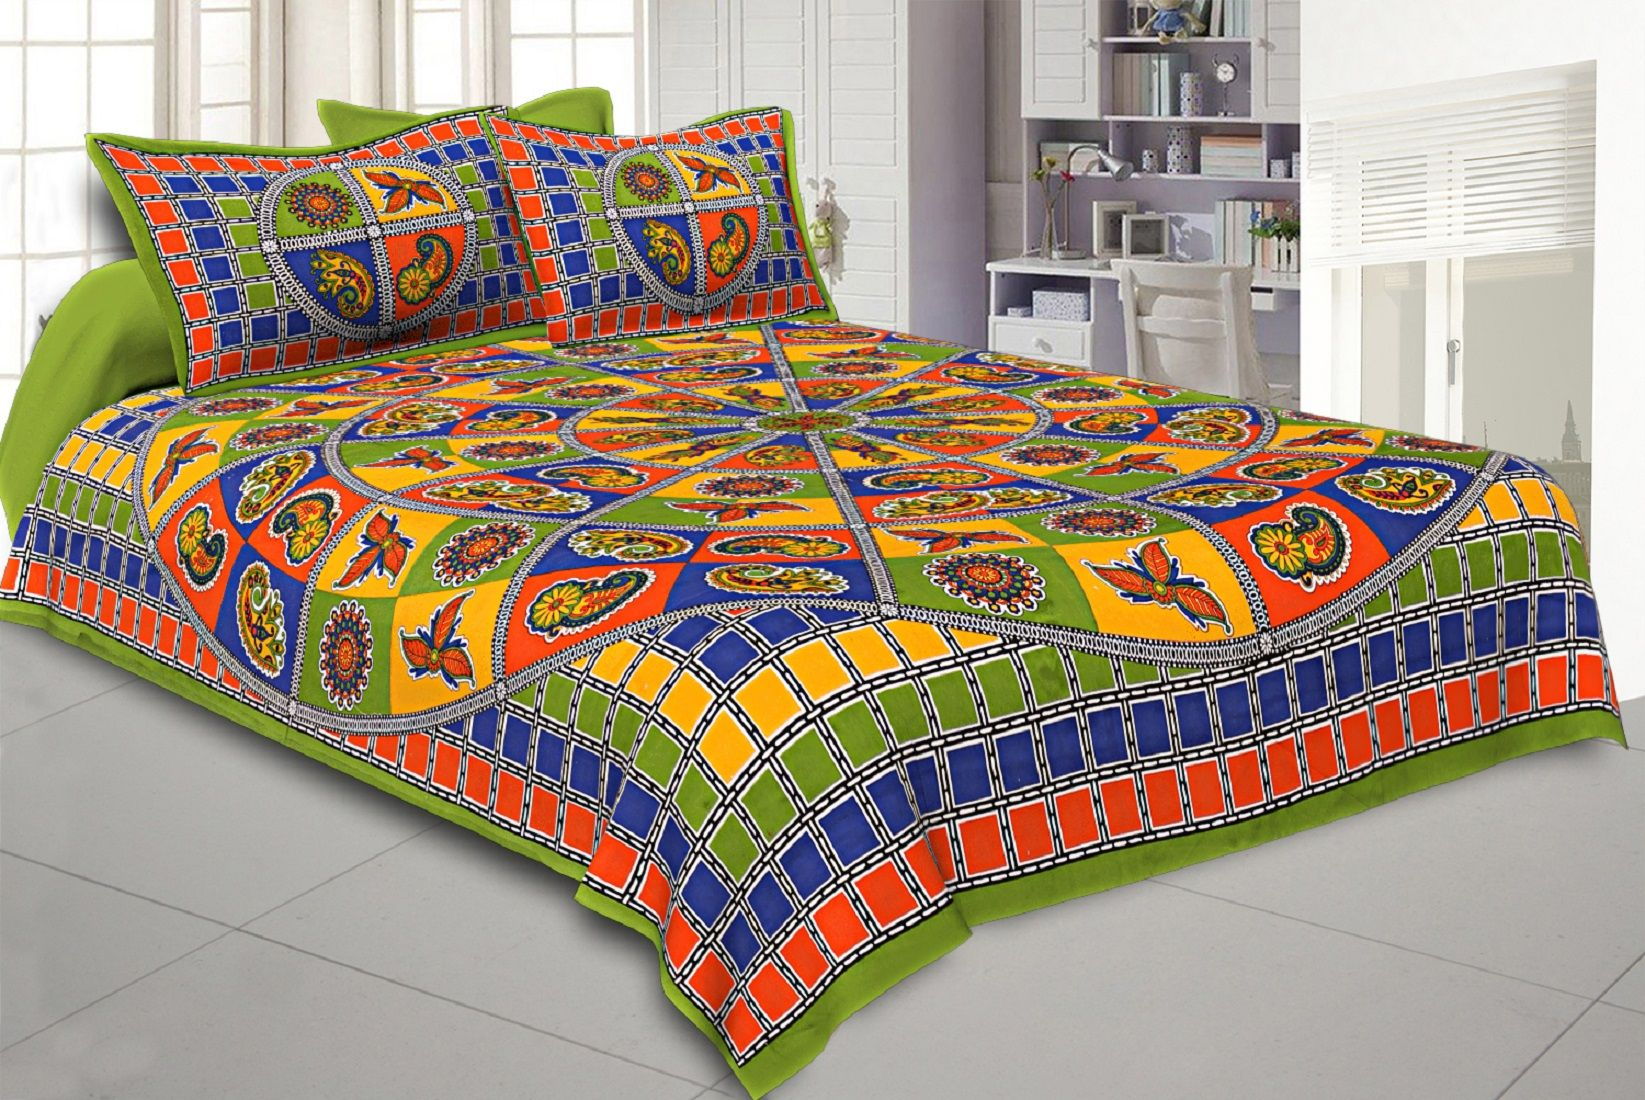 Kuber Industries Cotton 144 TC Double Bedsheet with 2 Pillow Covers (Green)Leaf Design